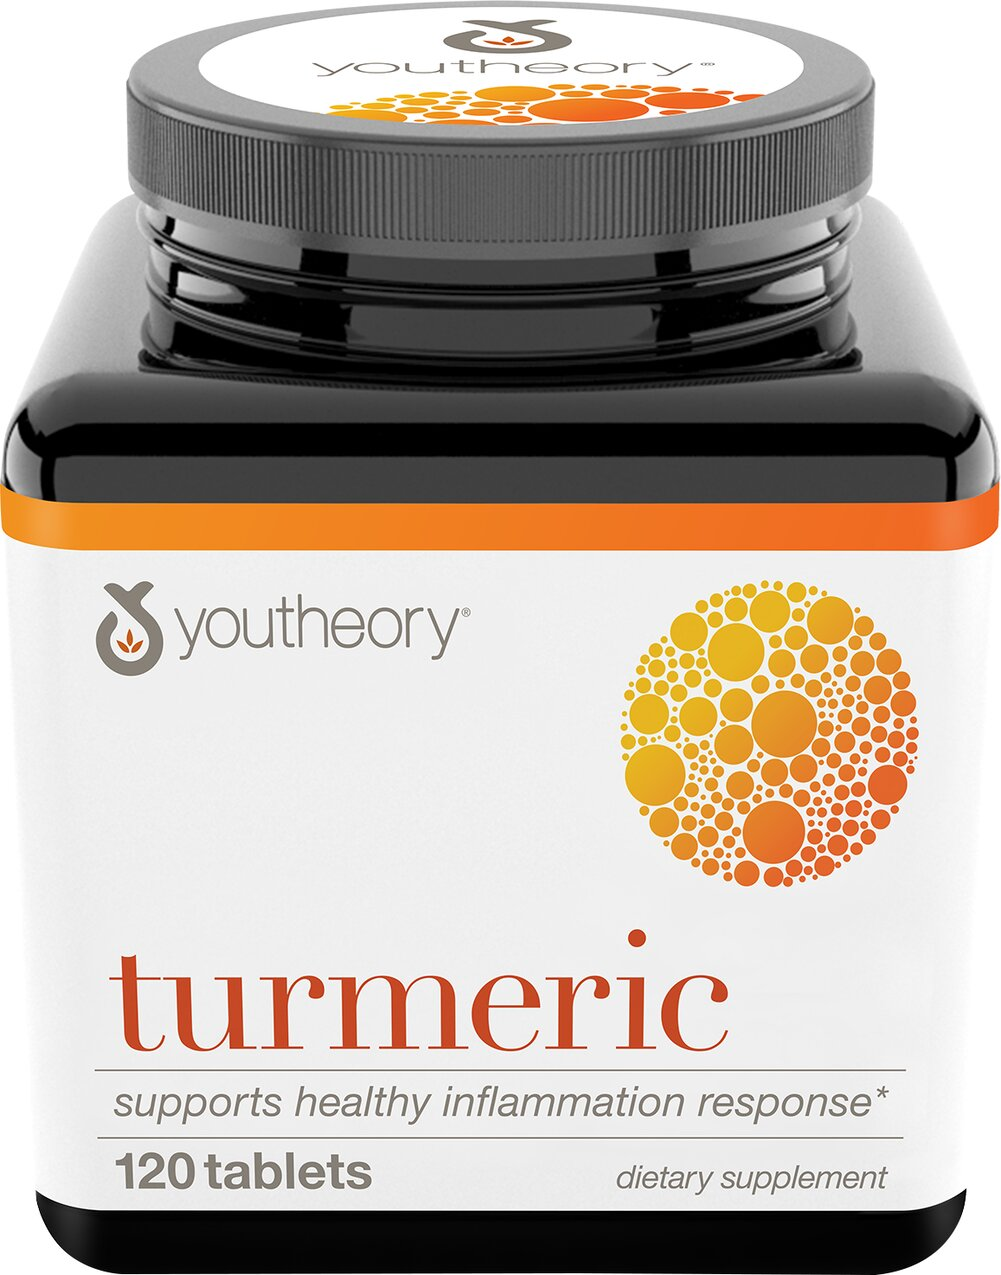 Turmeric Extract Formula <p><strong>From the Manufacturer's Label:</strong></p><p>• Efficient antioxidant<br />• Immune support<br /><br />Turmeric contains one of nature's best kept secrets - Curcuminoids, a specialized group of antioxidants; Youtheory's Turmeric is carefully sourced with the highest level of Curcumin available and enhanced with a patented Black Pepper extract that substantially increases the bio-availability of our in